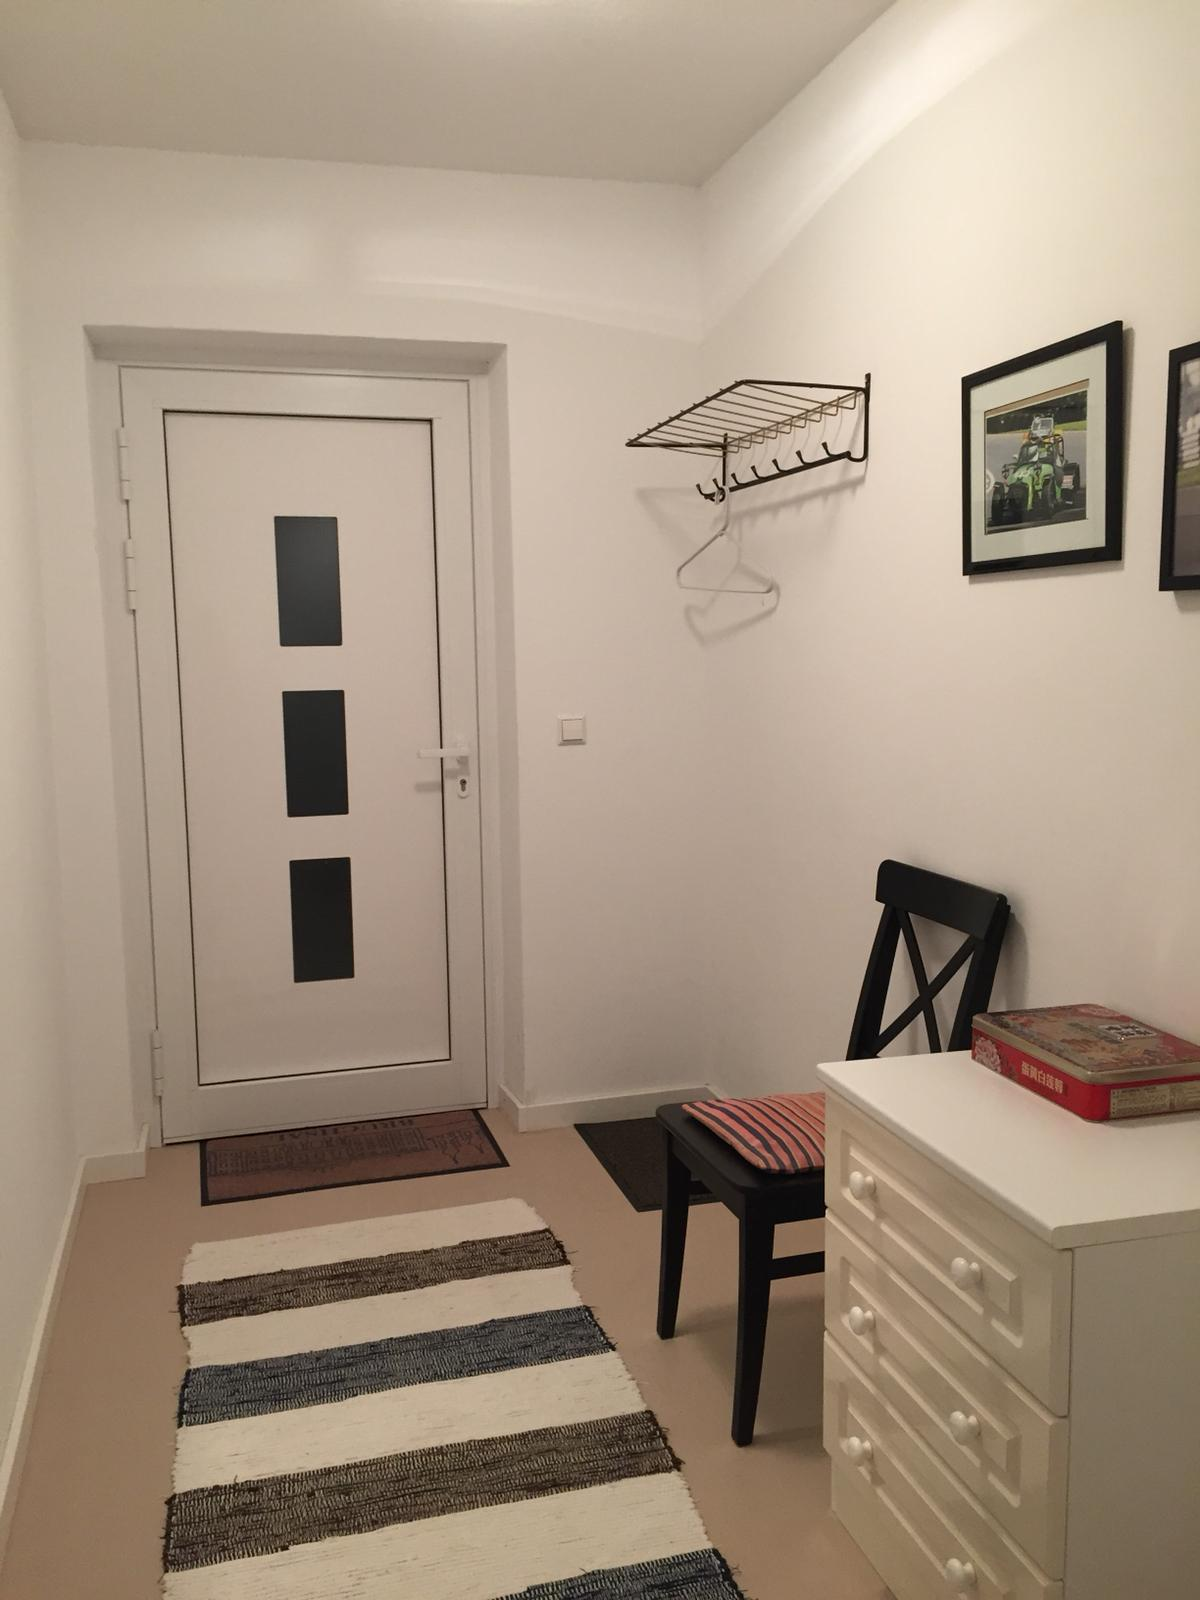 Spacious entrance hall for jackets and shoes